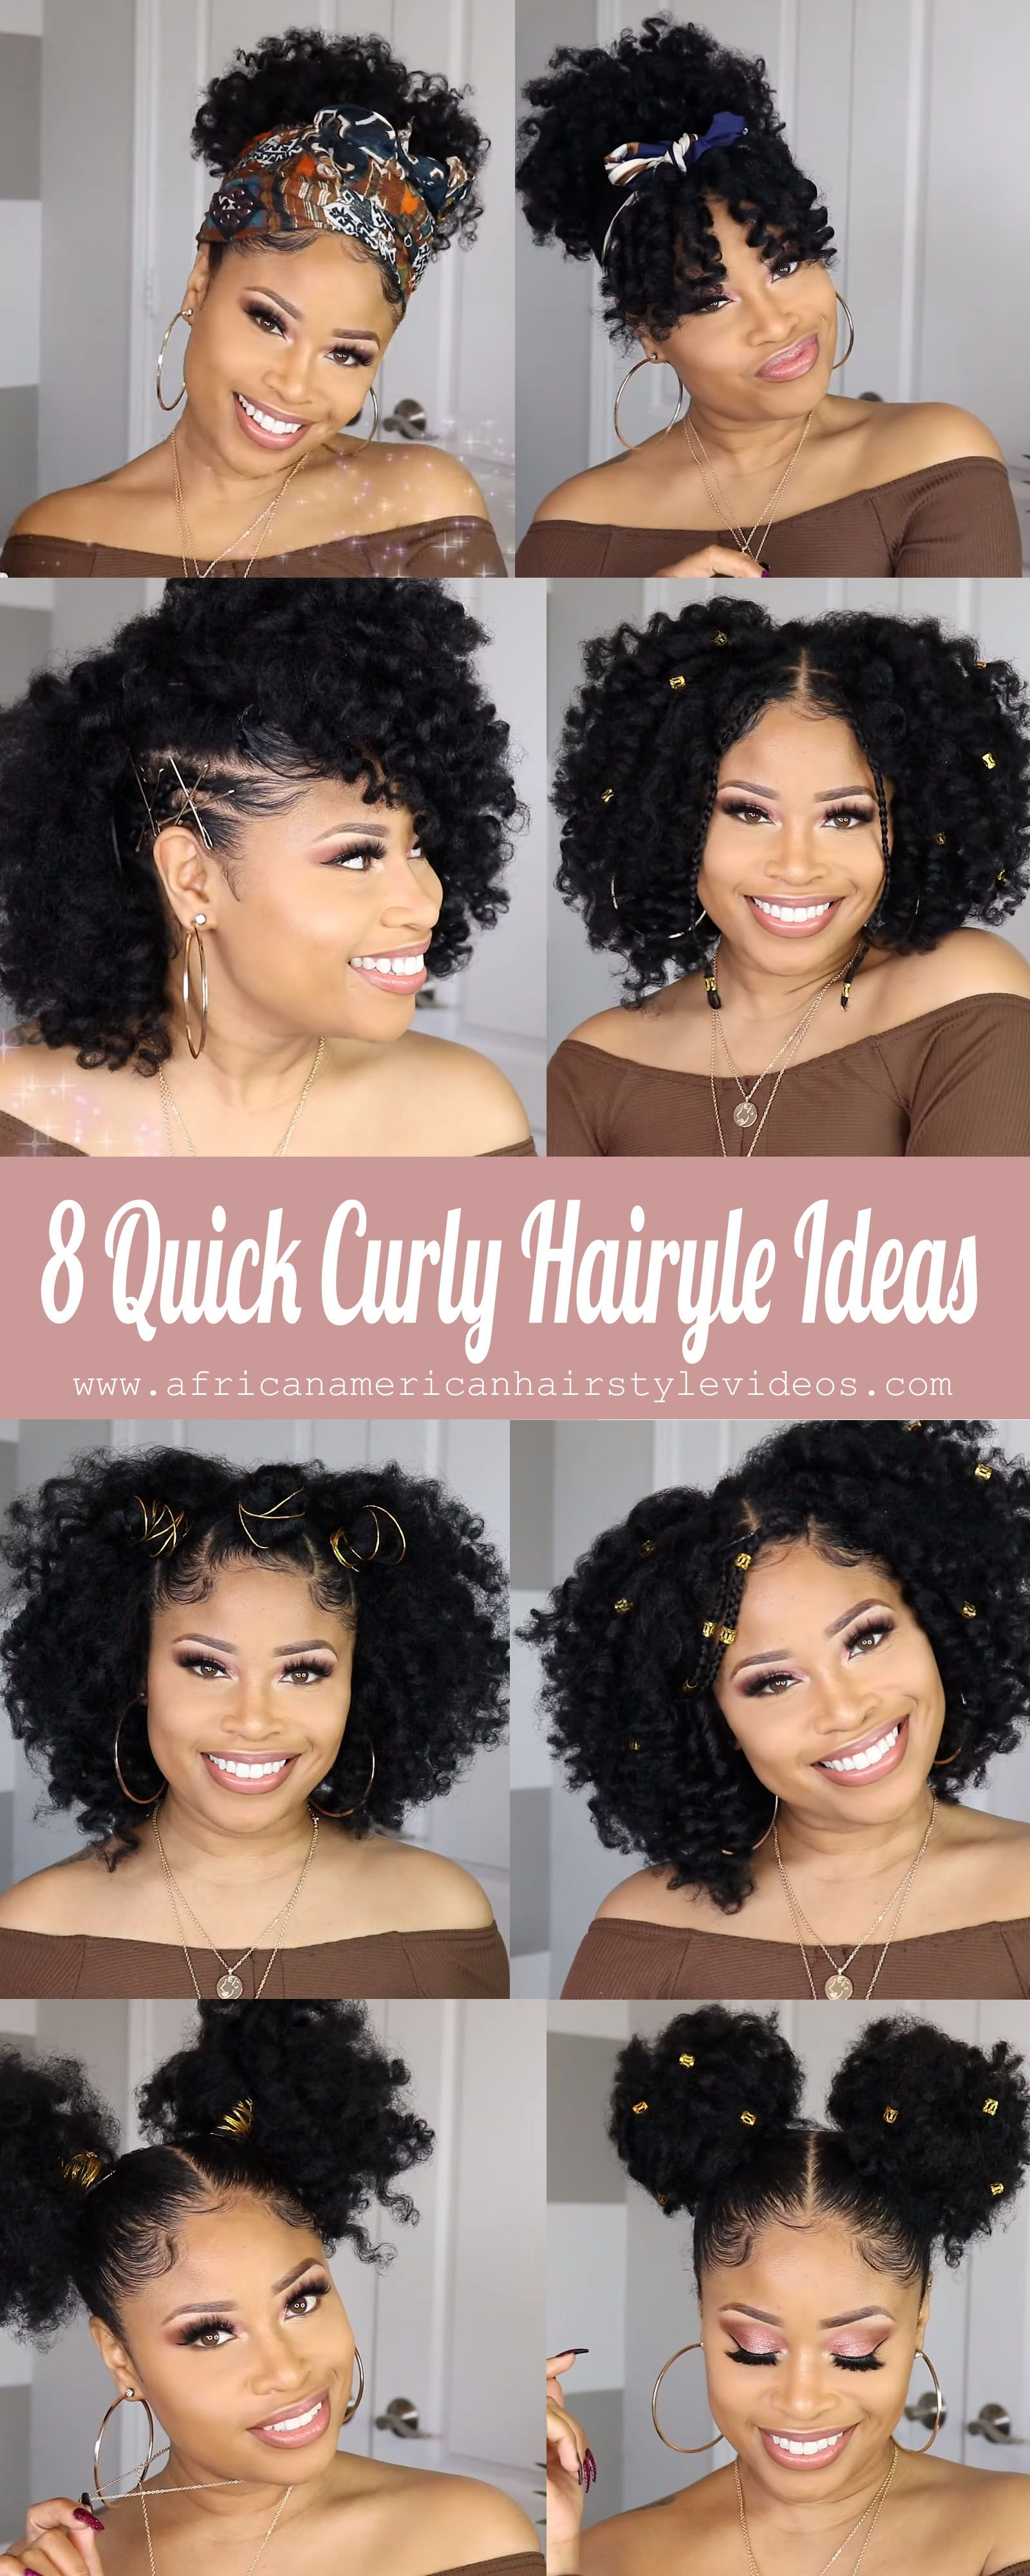 8 Trendy Style Ideas For Curly Natural Hair Tips Tricks African American Hairstyle Videos Aahv Curly Hair Styles Naturally Natural Hair Styles Curly Hair Styles